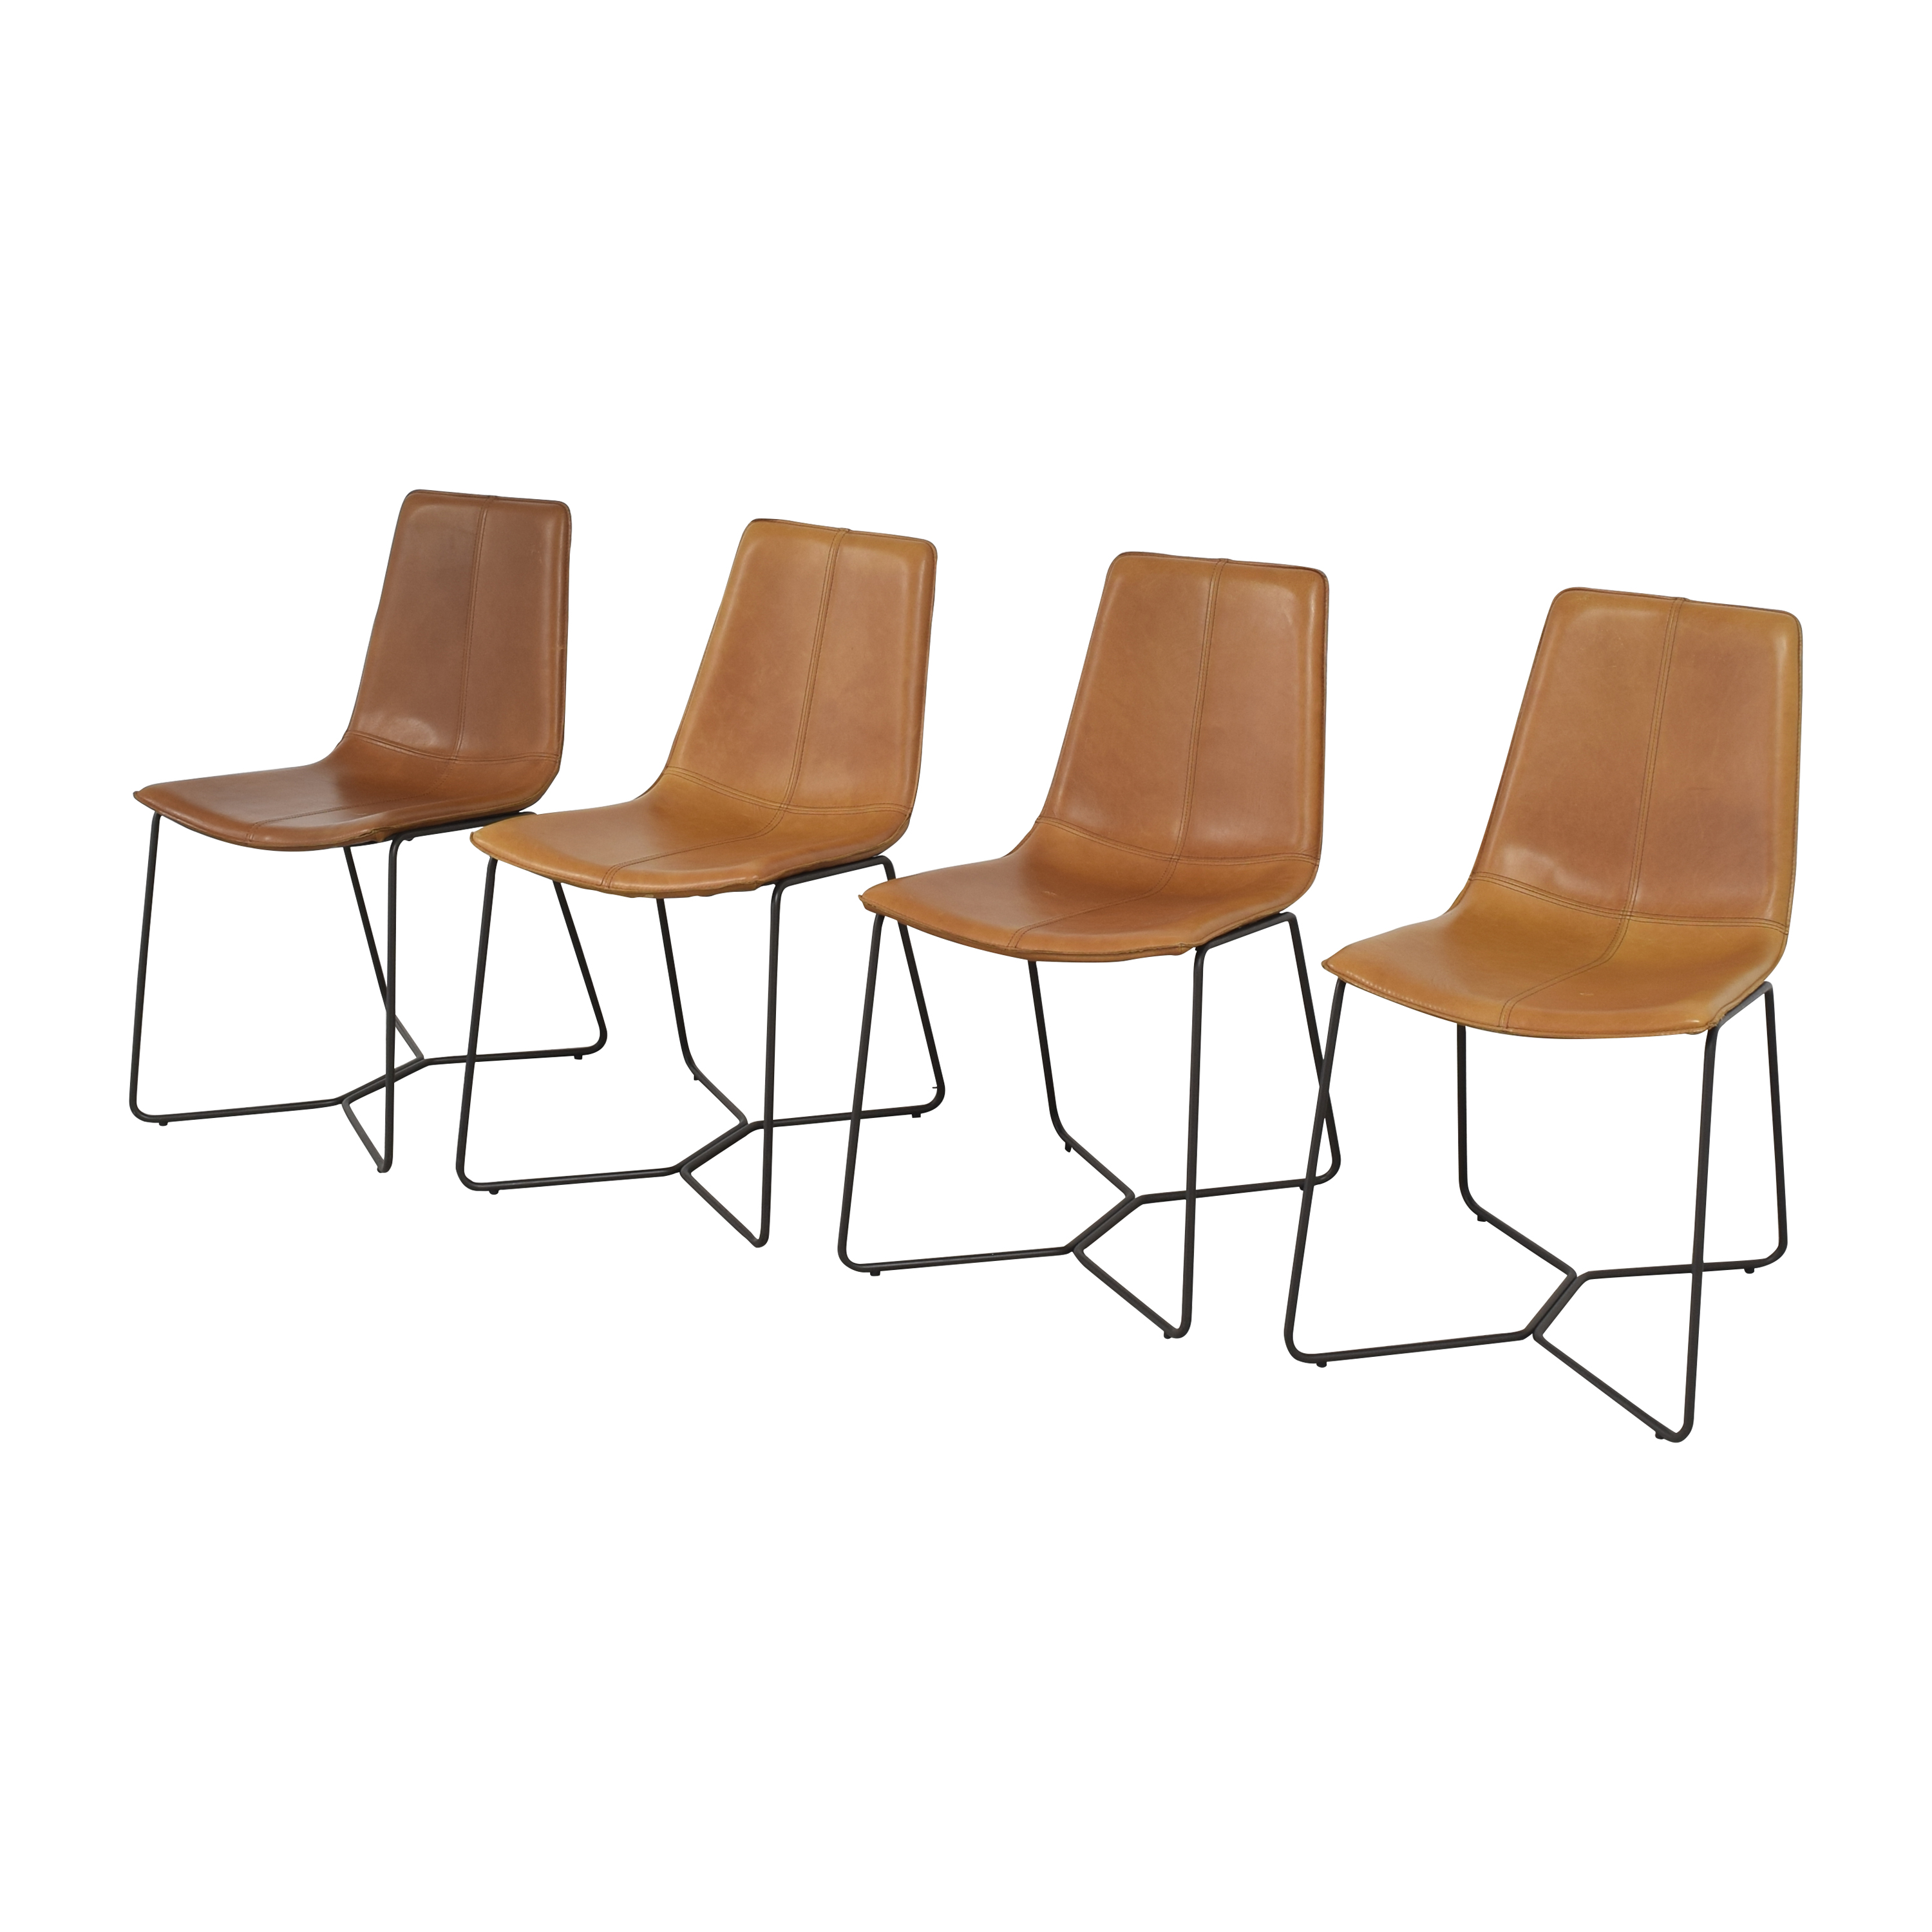 West Elm West Elm Slope Dining Chairs Chairs